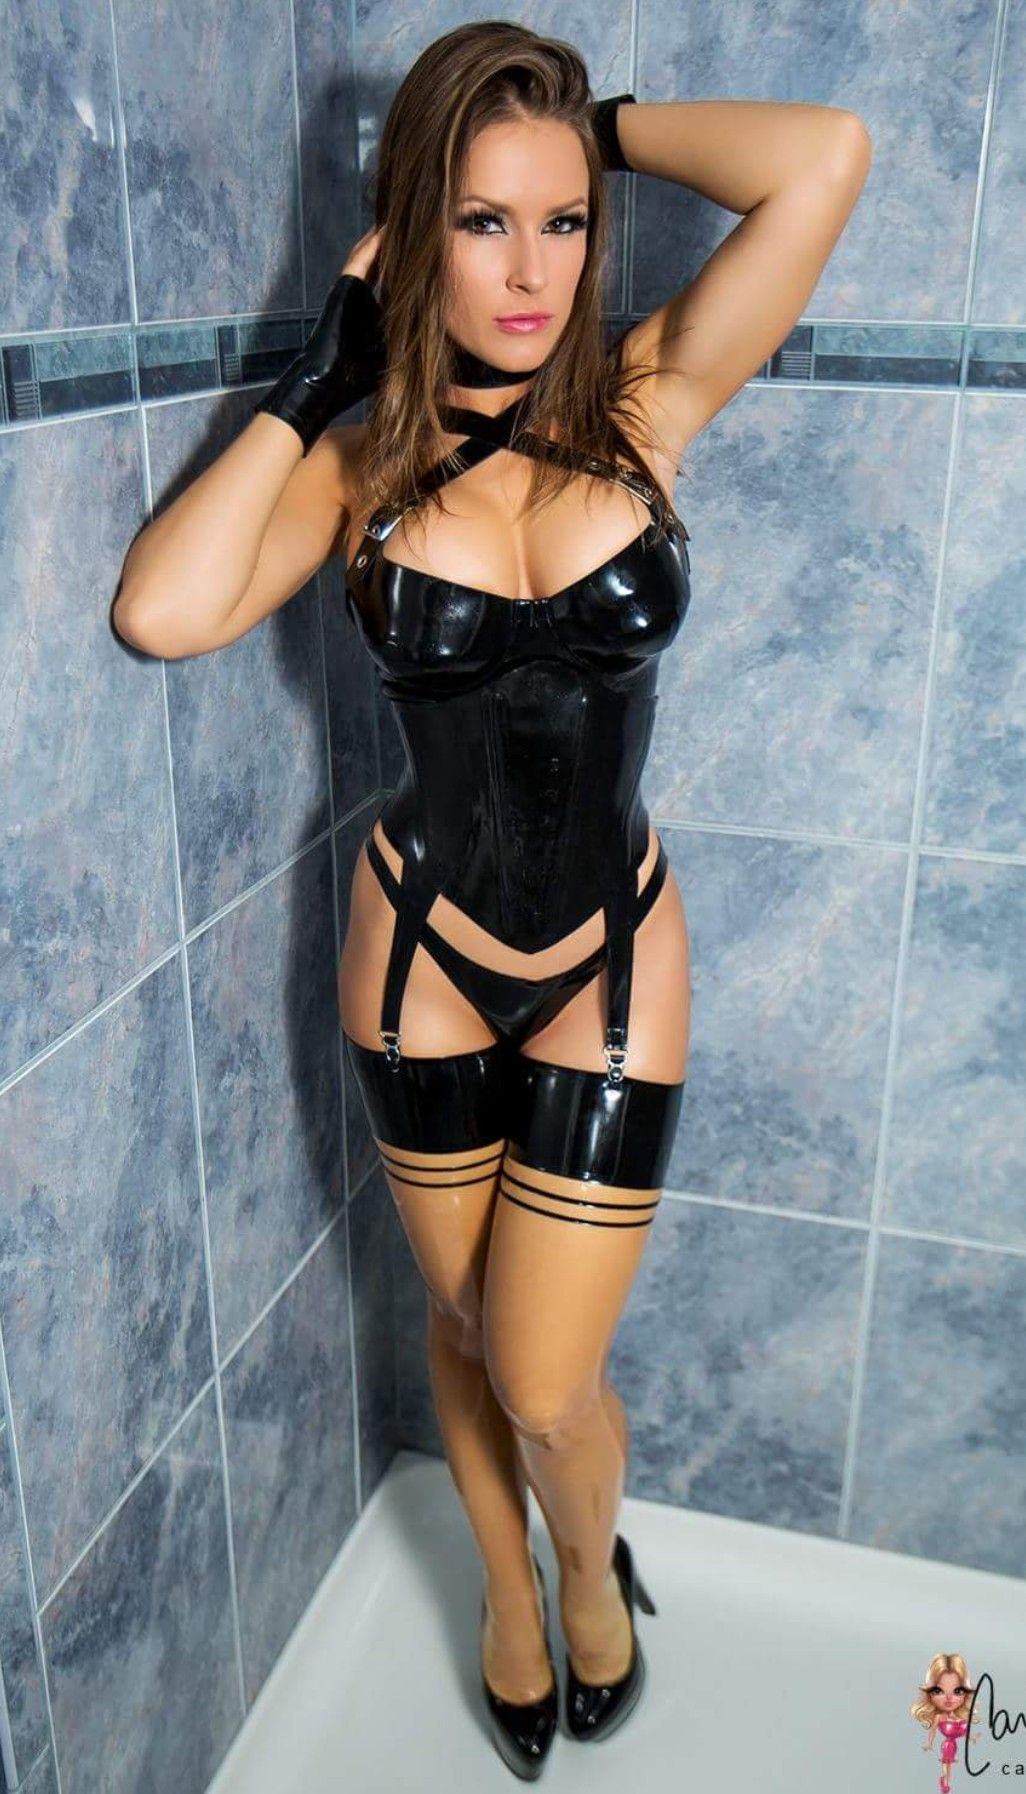 Latex Lingerie Pin By Caroline Corinne On Underwear Pinterest And Fashion